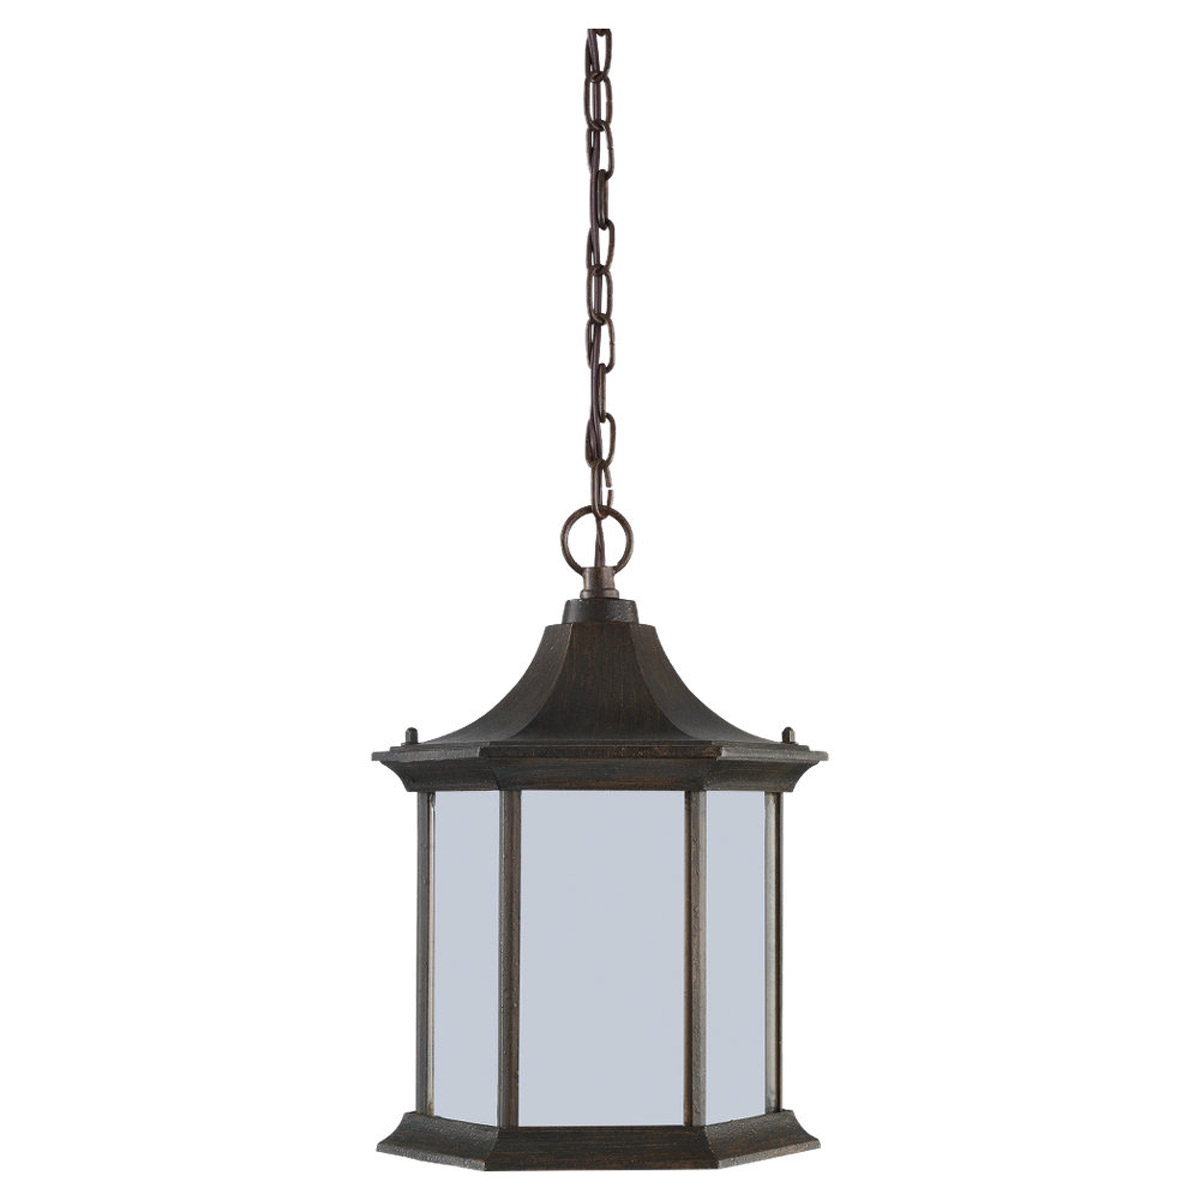 Sea Gull Lighting Ardsley Court 1 Light Outdoor Pendant in Textured Rust Patina 69136PBLE-08